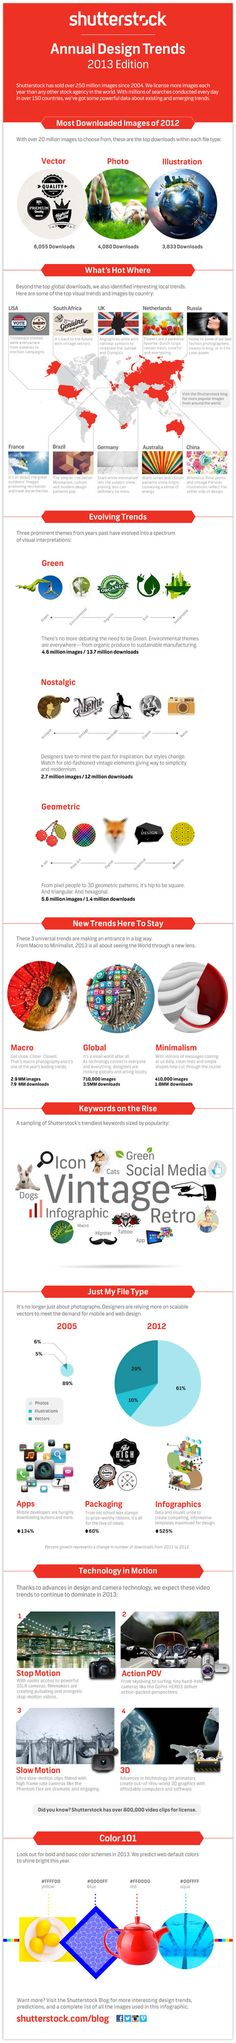 Shutterstock Annual Design Trends 2013 #infographic